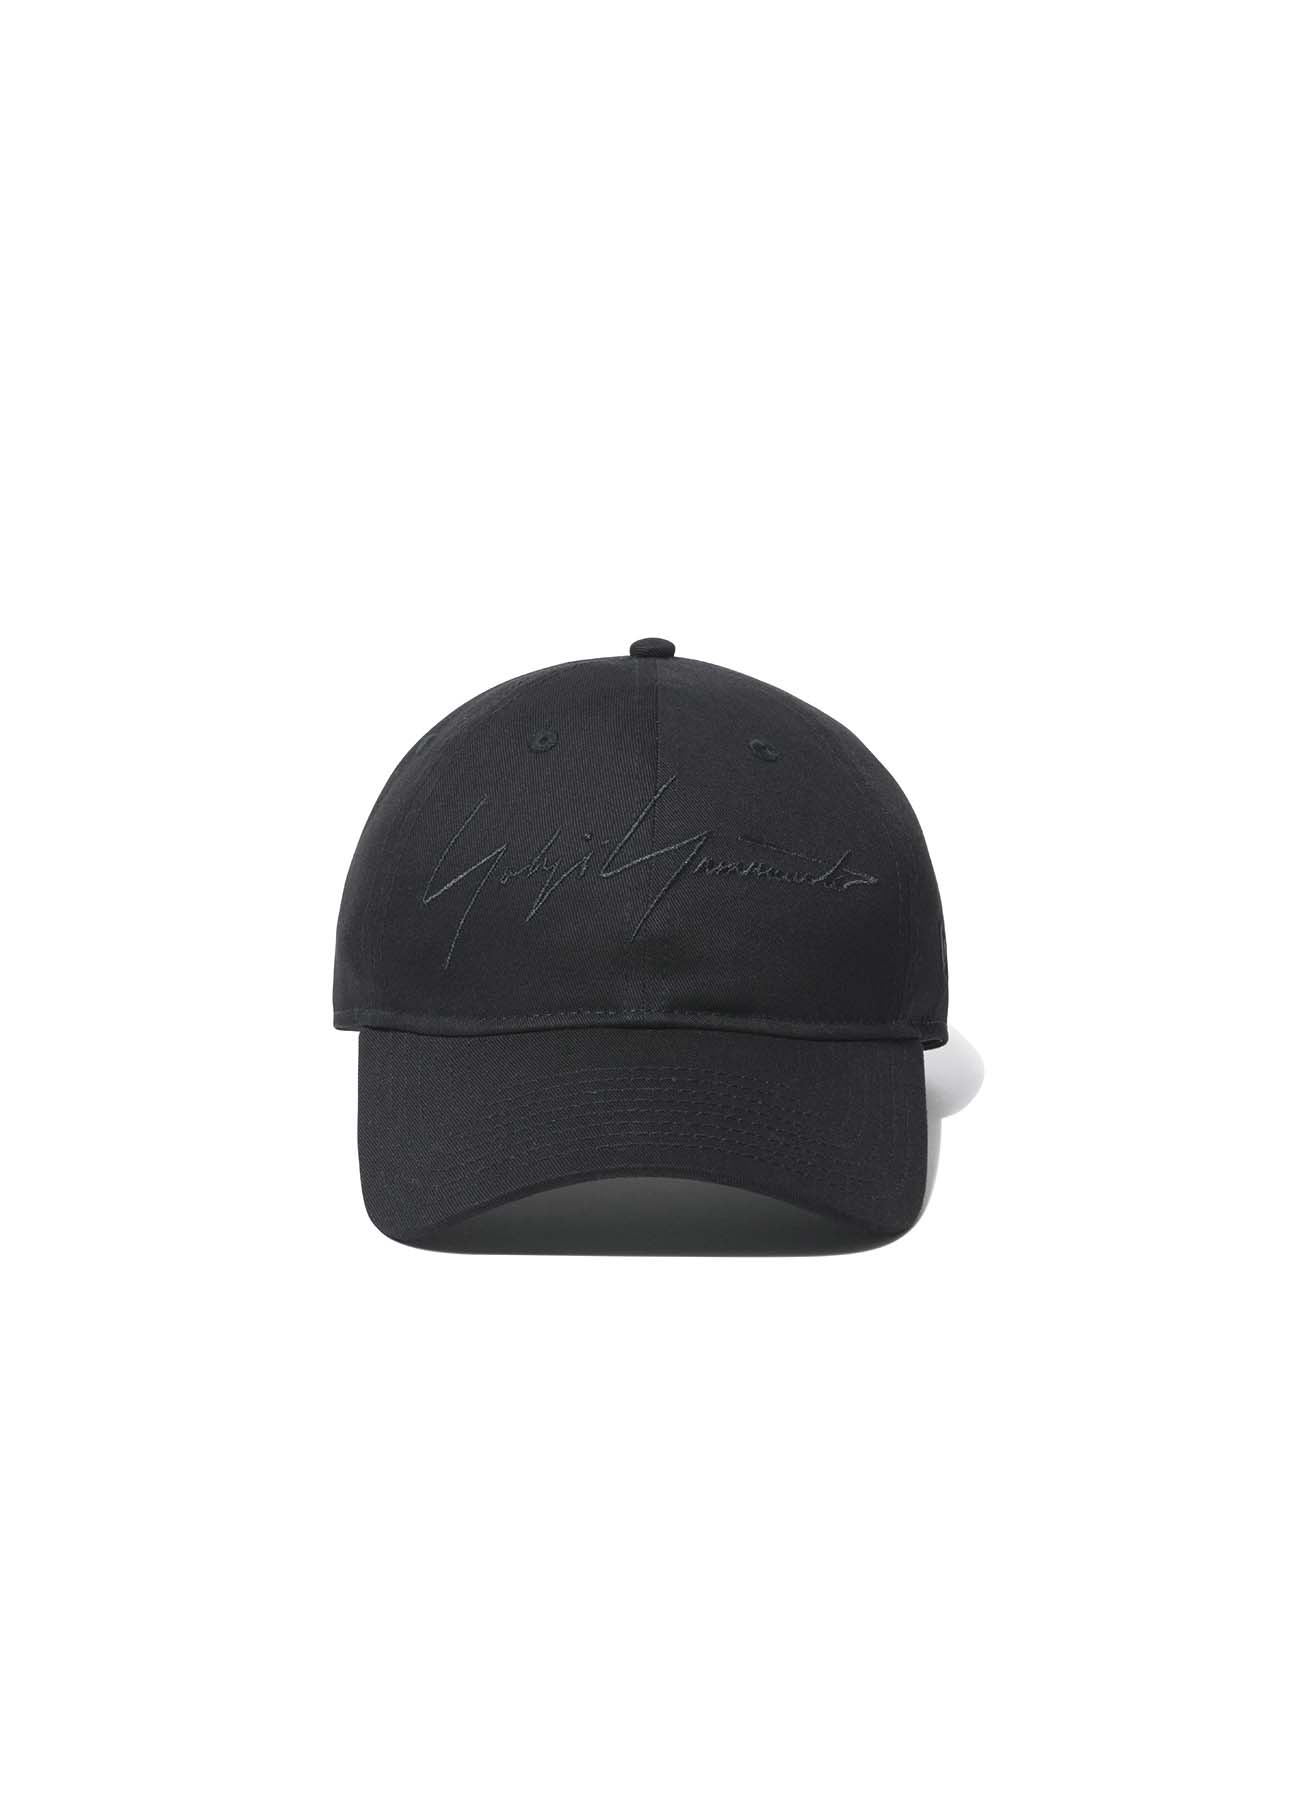 Yohji Yamamoto × New Era 9THIRTY Black Cotton Black Logo